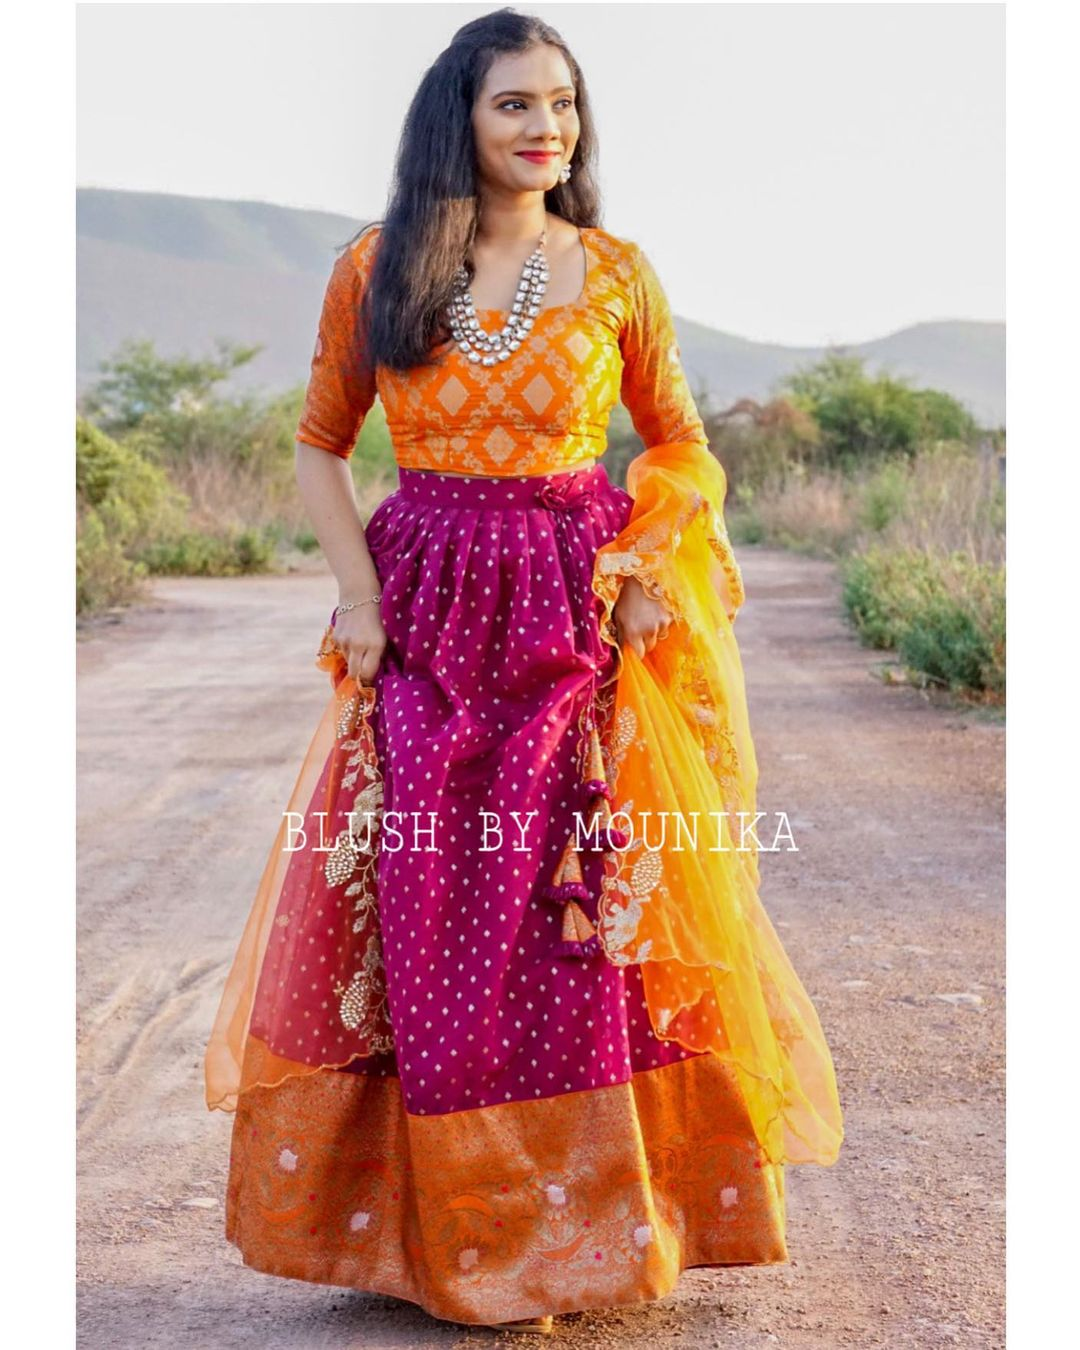 Pruple Chanderi. Price : ₹7200/- Purple Chanderi Lehenga with Banaras Border and Banaras Brocade Crop top paired with net cut work dupatta.  Can Can attached to the flare and finished with double lining. 2021-05-30